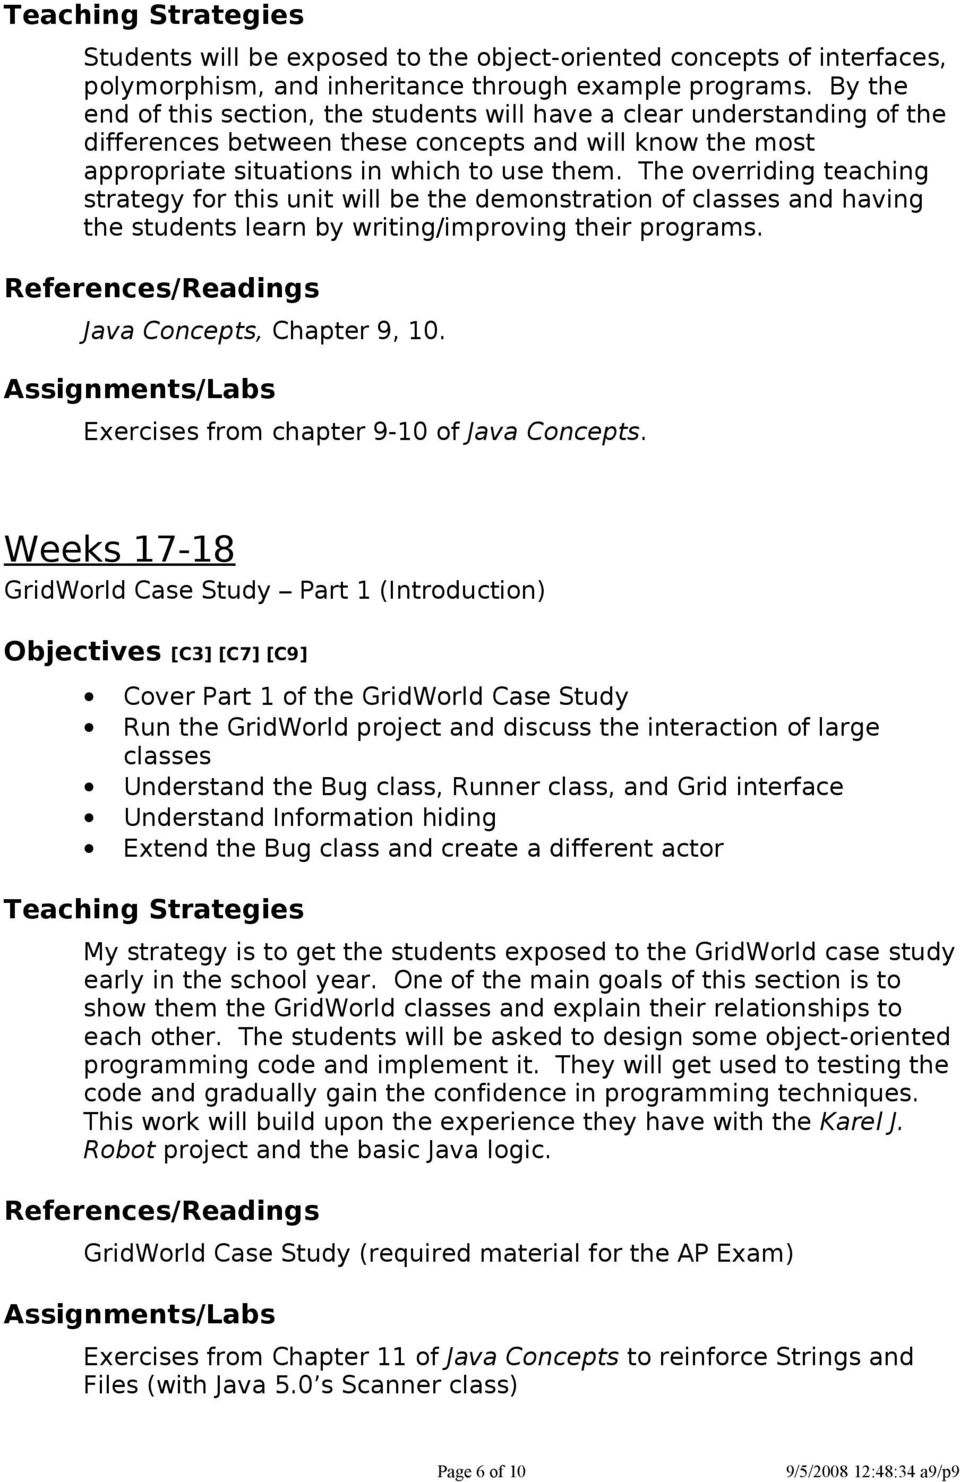 The overriding teaching strategy for this unit will be the demonstration of classes and having the students learn by writing/improving their programs. Java Concepts, Chapter 9, 10.